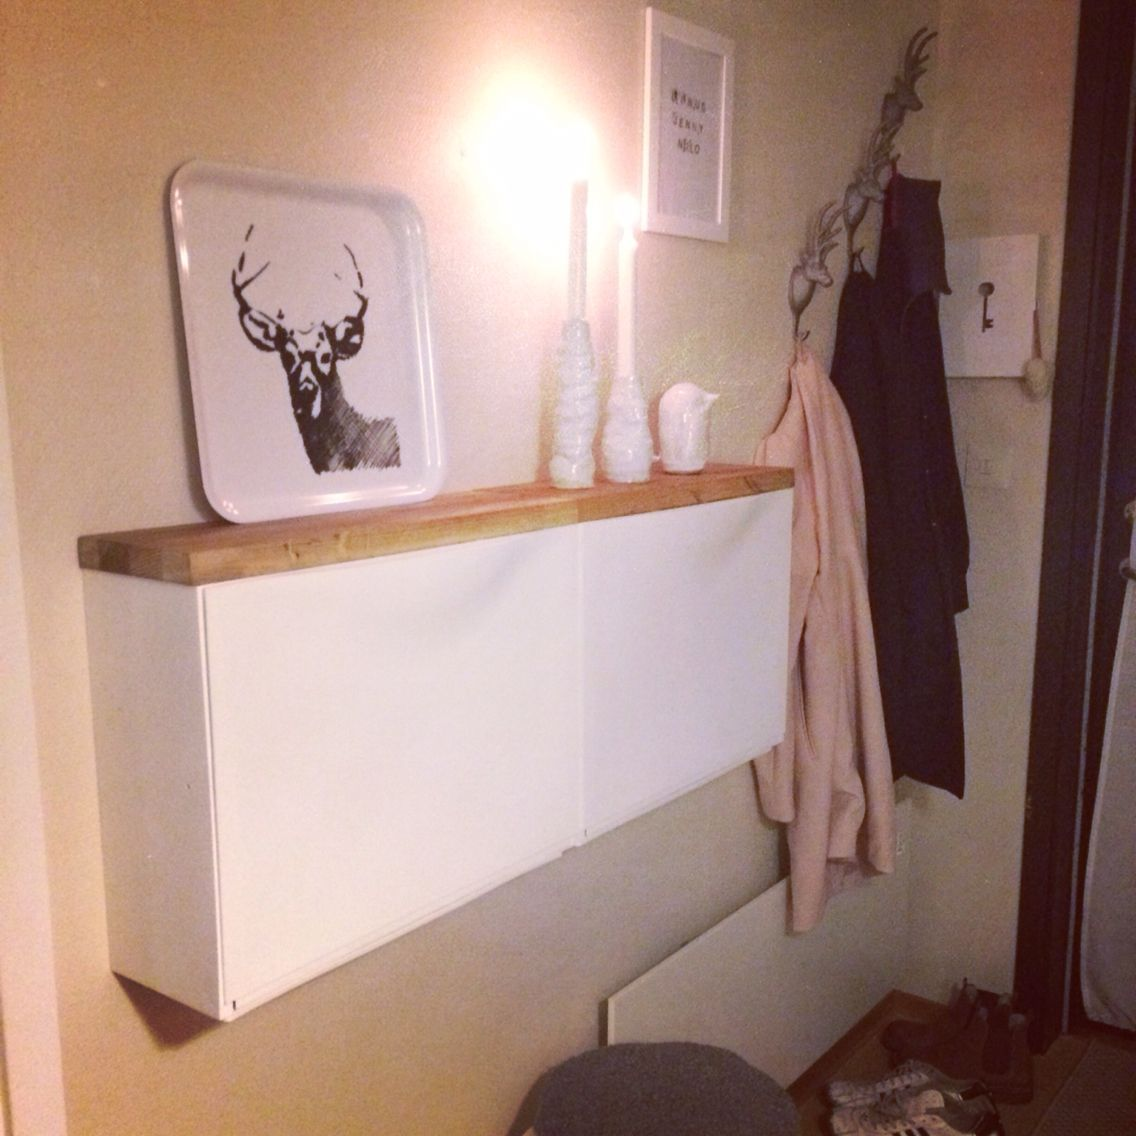 Storage for narrow hallway  miss leuk met een spiegel erboven  Living Places  Pinterest  Ikea